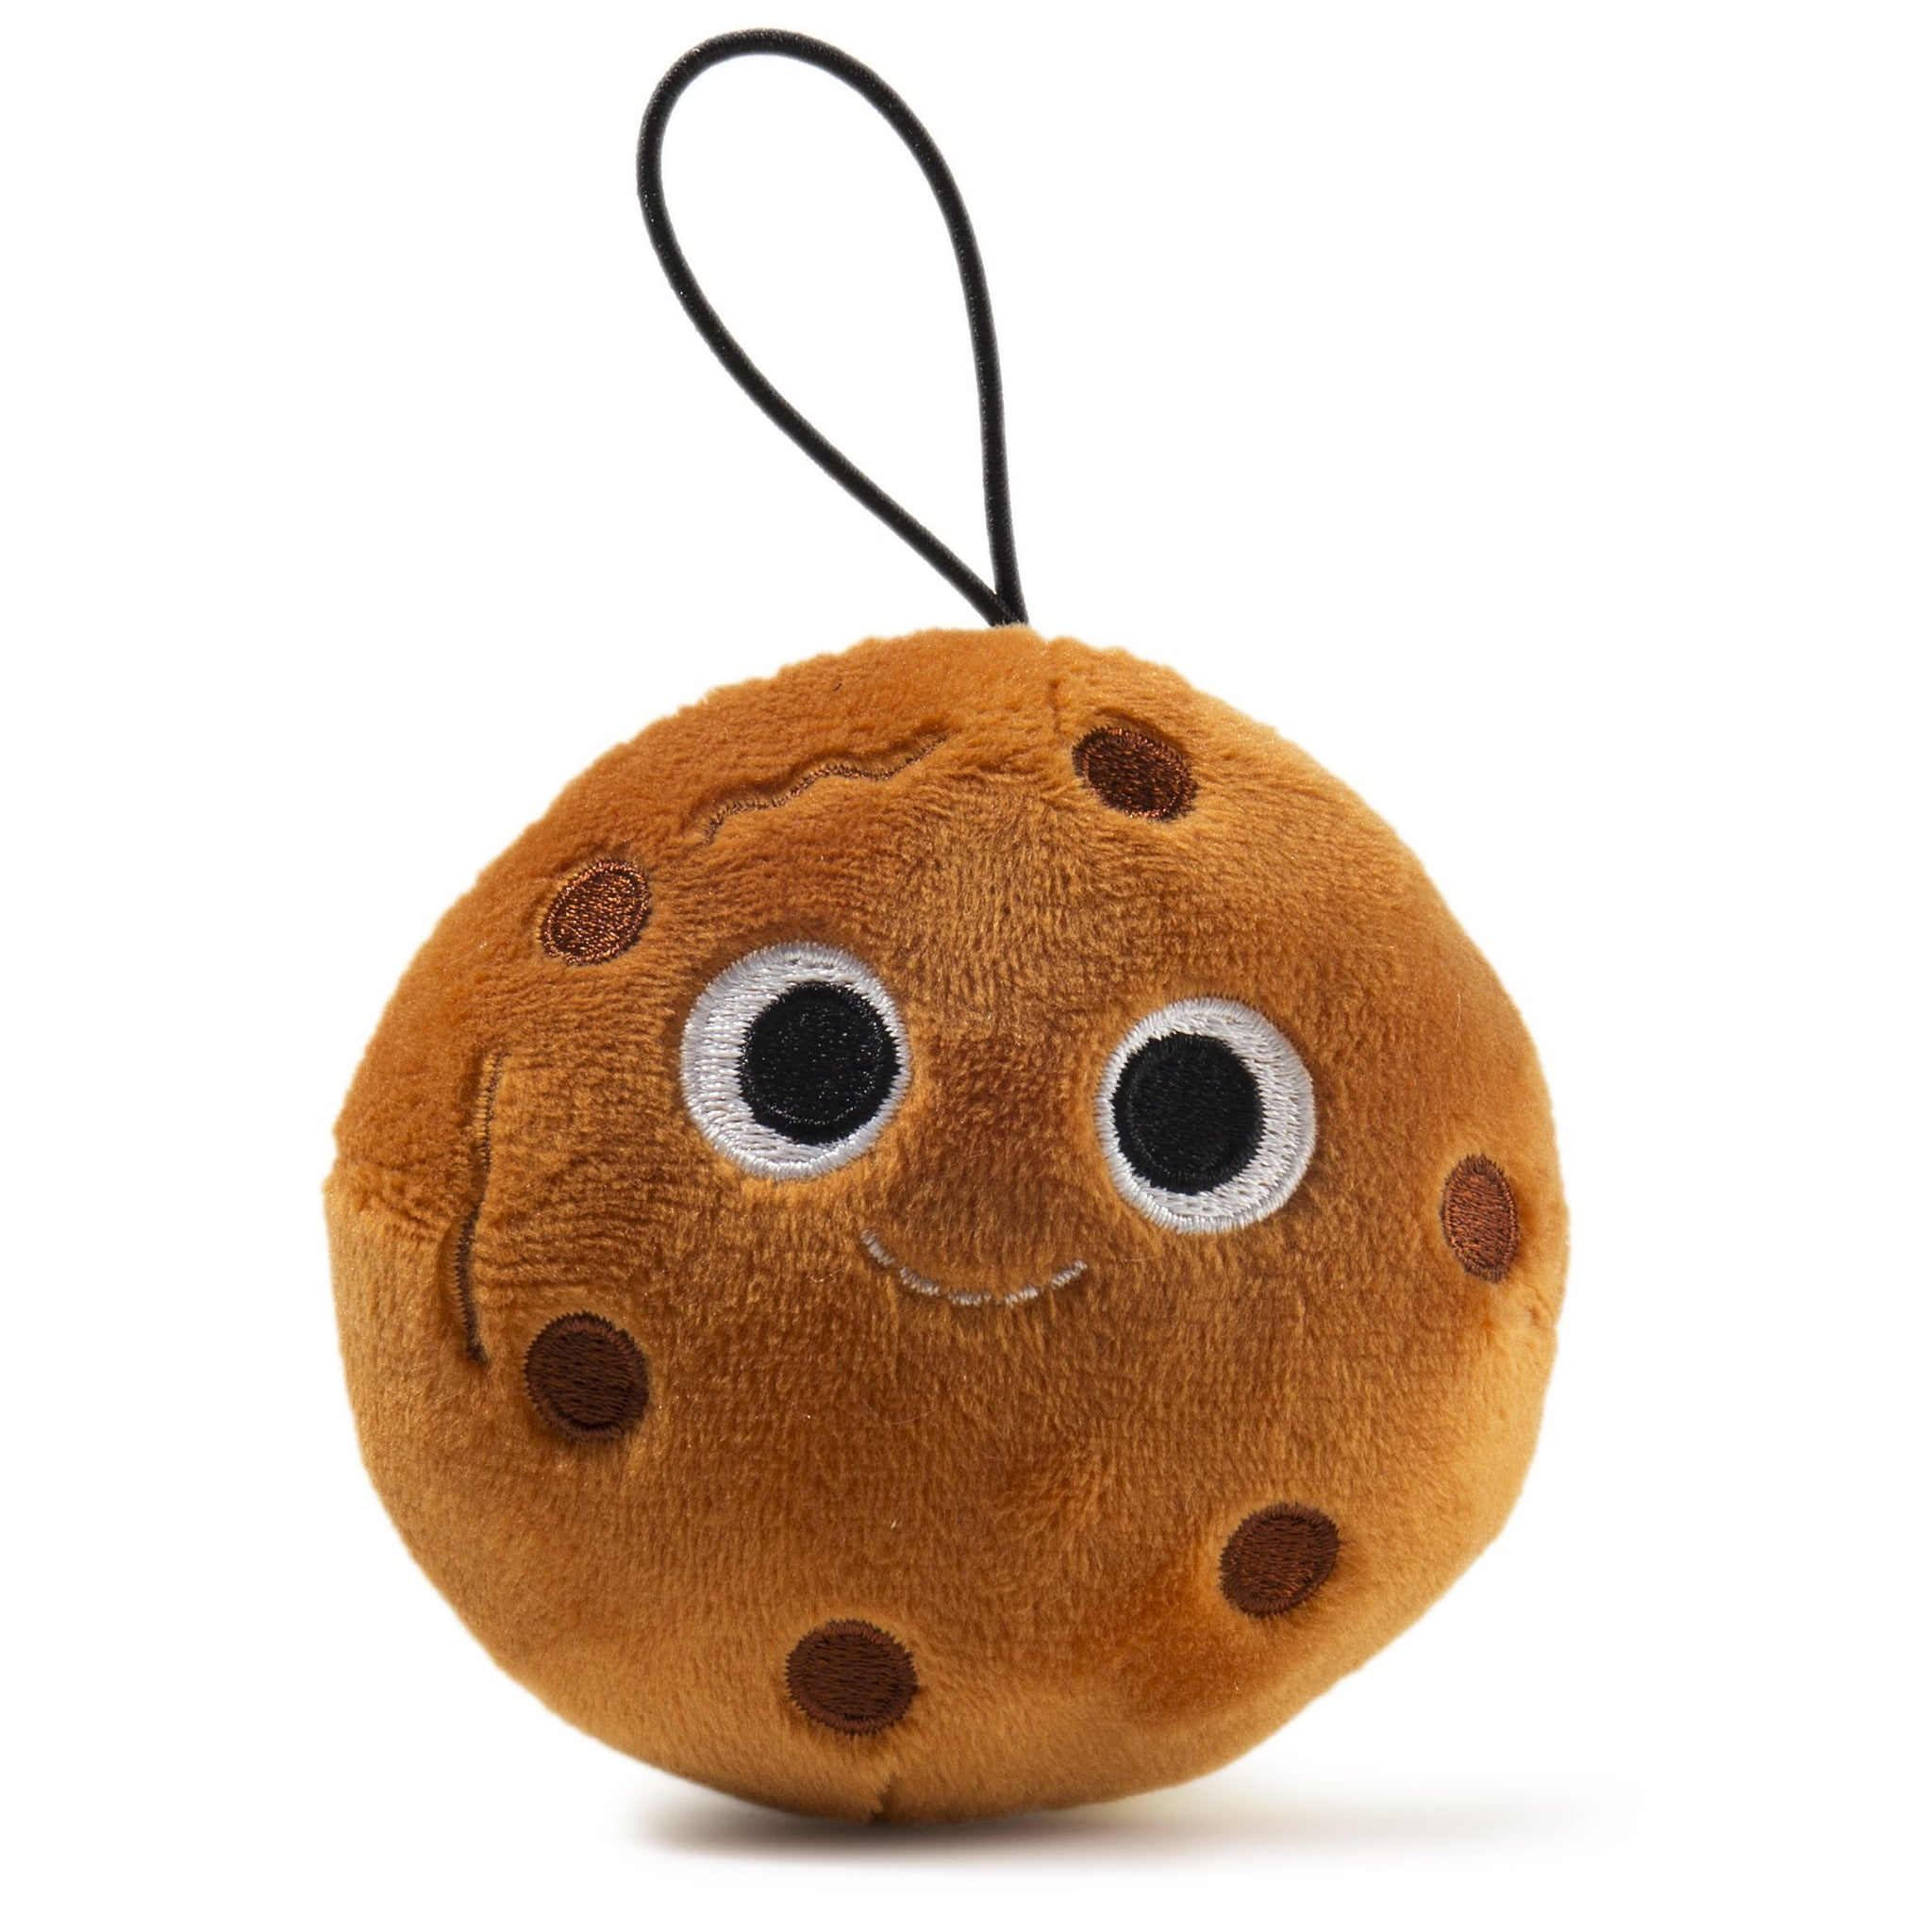 Yummy World Small Ice Cream Chipwich Plush Ornament - Kidrobot - Designer Art Toys